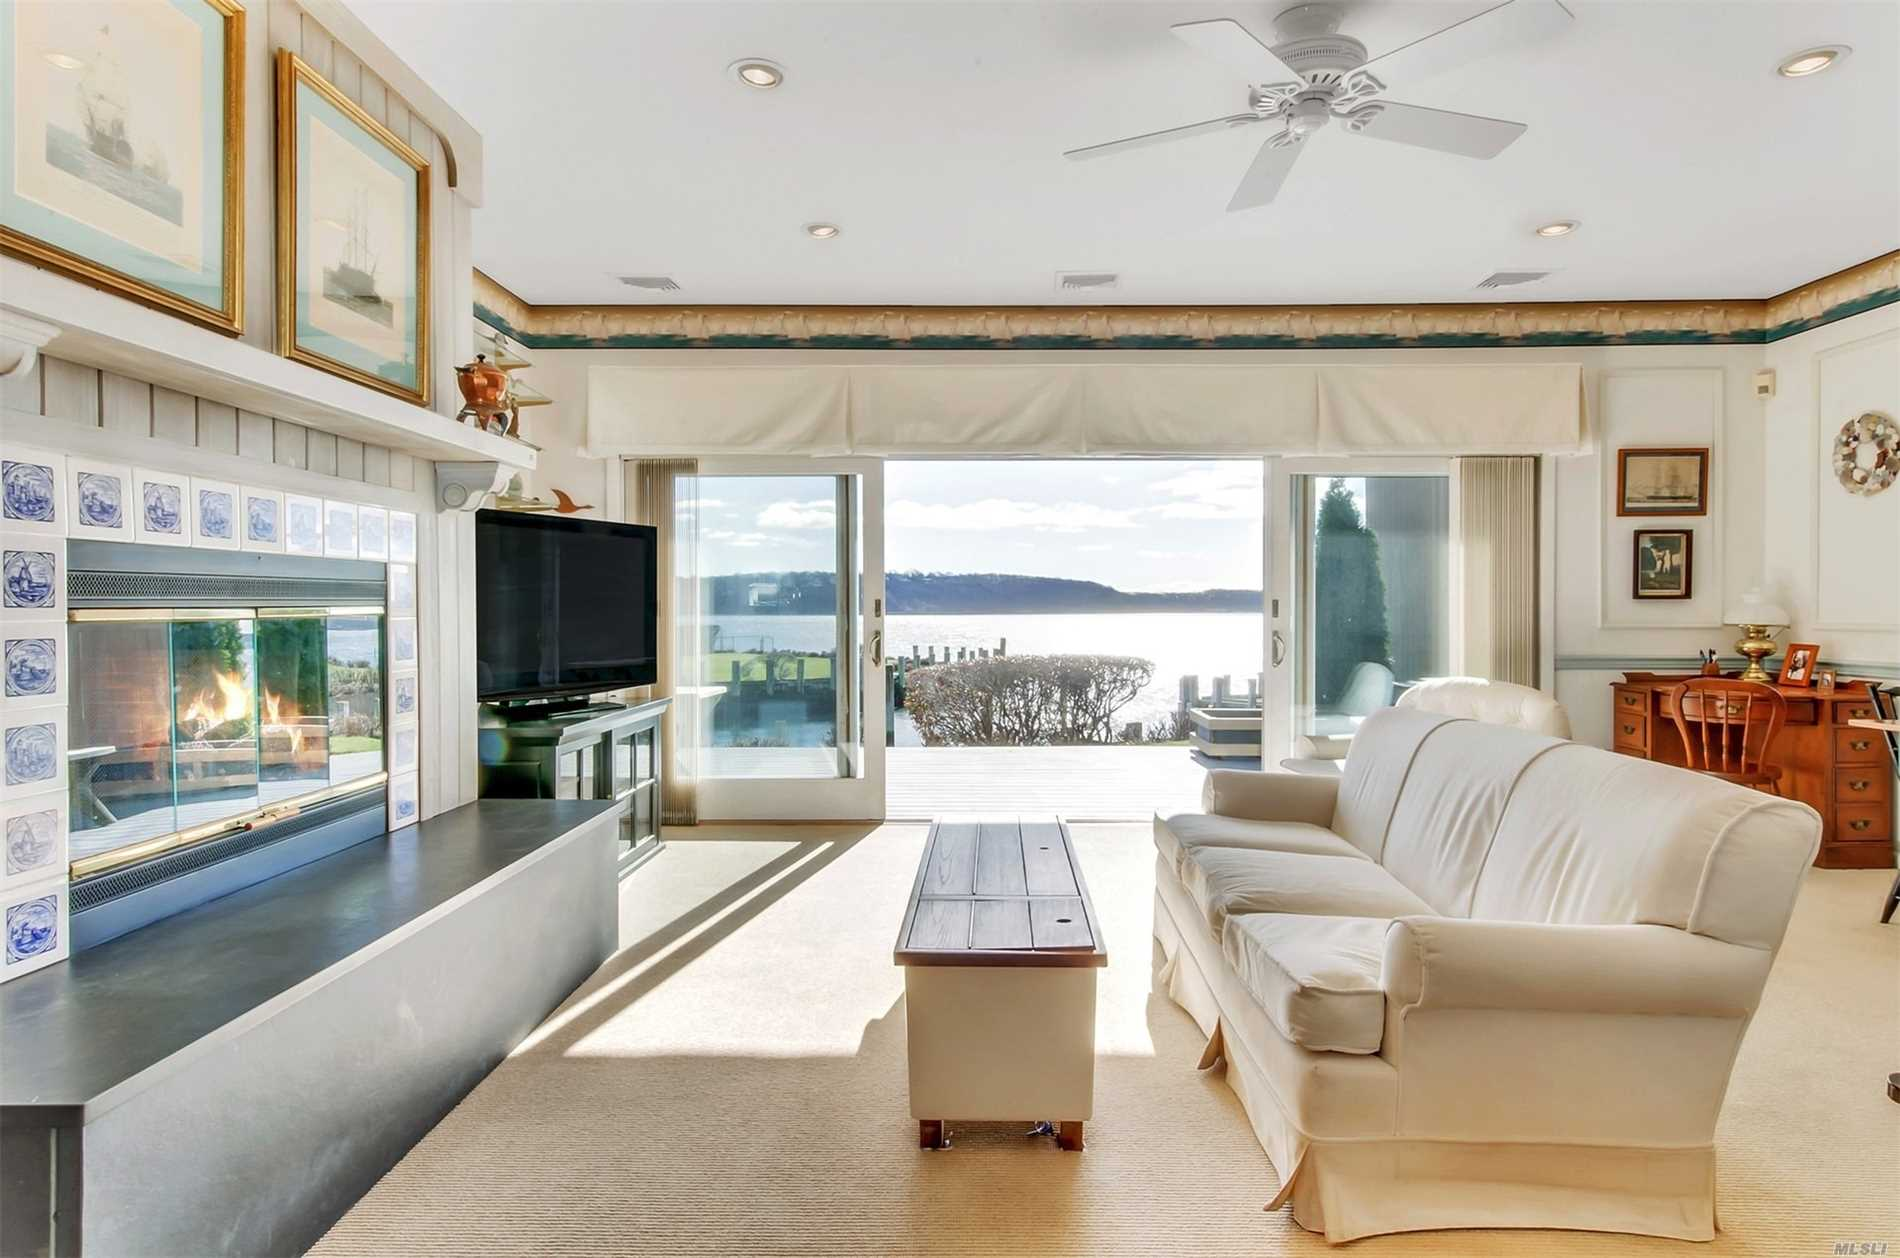 Upscale Bayfront Townhouse Condominium With World Class Views Of Peconic Bay And Shelter Island From Common Living Areas And 2nd Floor Master Suite. 40 Ft Deepwater Dock, 10Ft Depth At Mlt With Direct Bay Access. Close To Sandy Bay Beach, Park, And Greenport Village. Carefree Waterfront Living With Low Maintenance Of $650 And Taxes $4, 281.16.